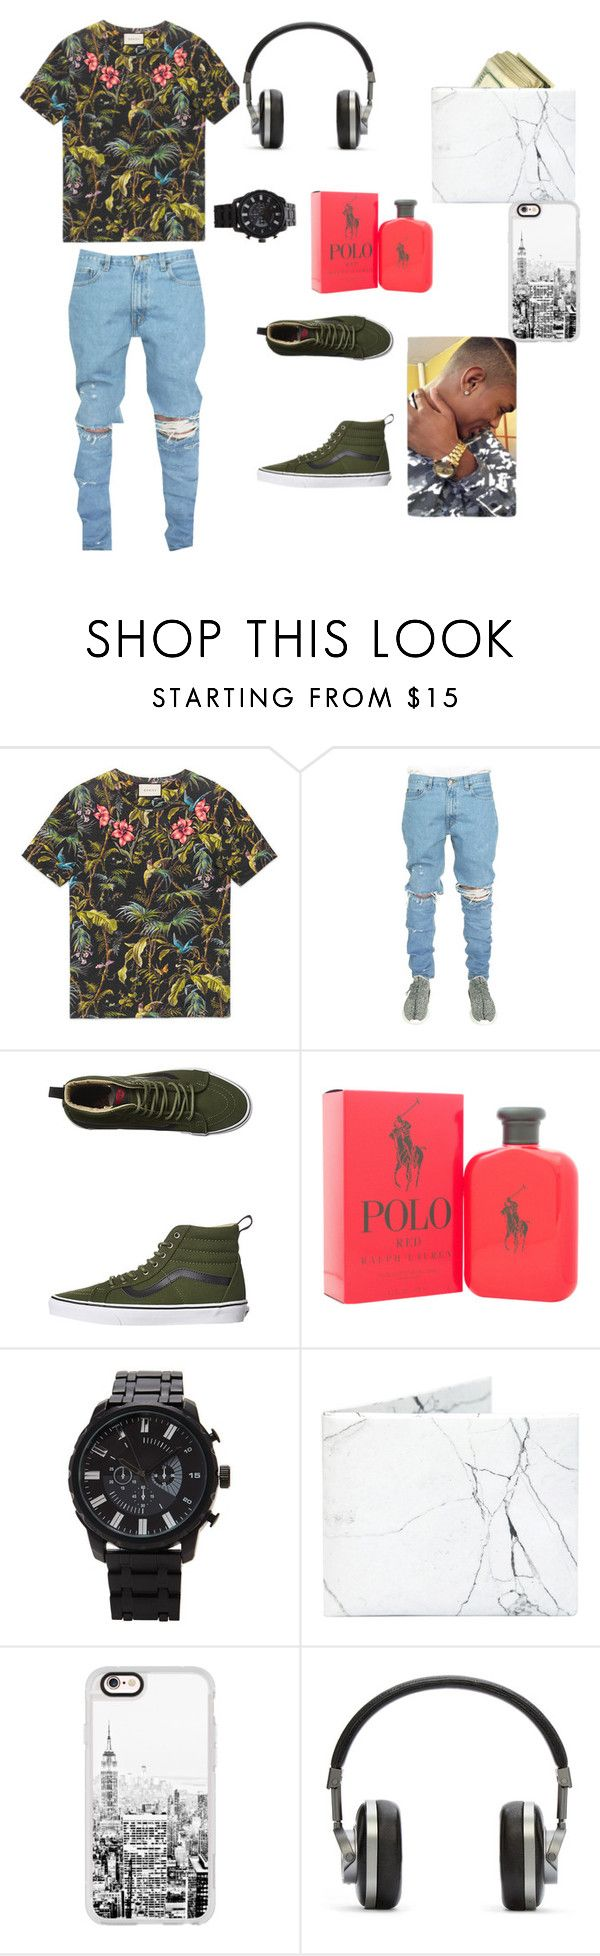 """men or ladies i'm  still a pro  outfit maker"" by queennevaeh2232 ❤ liked on Polyvore featuring Gucci, Vans, Ralph Lauren, Forever 21, Casetify, Master & Dynamic, men's fashion and menswear"